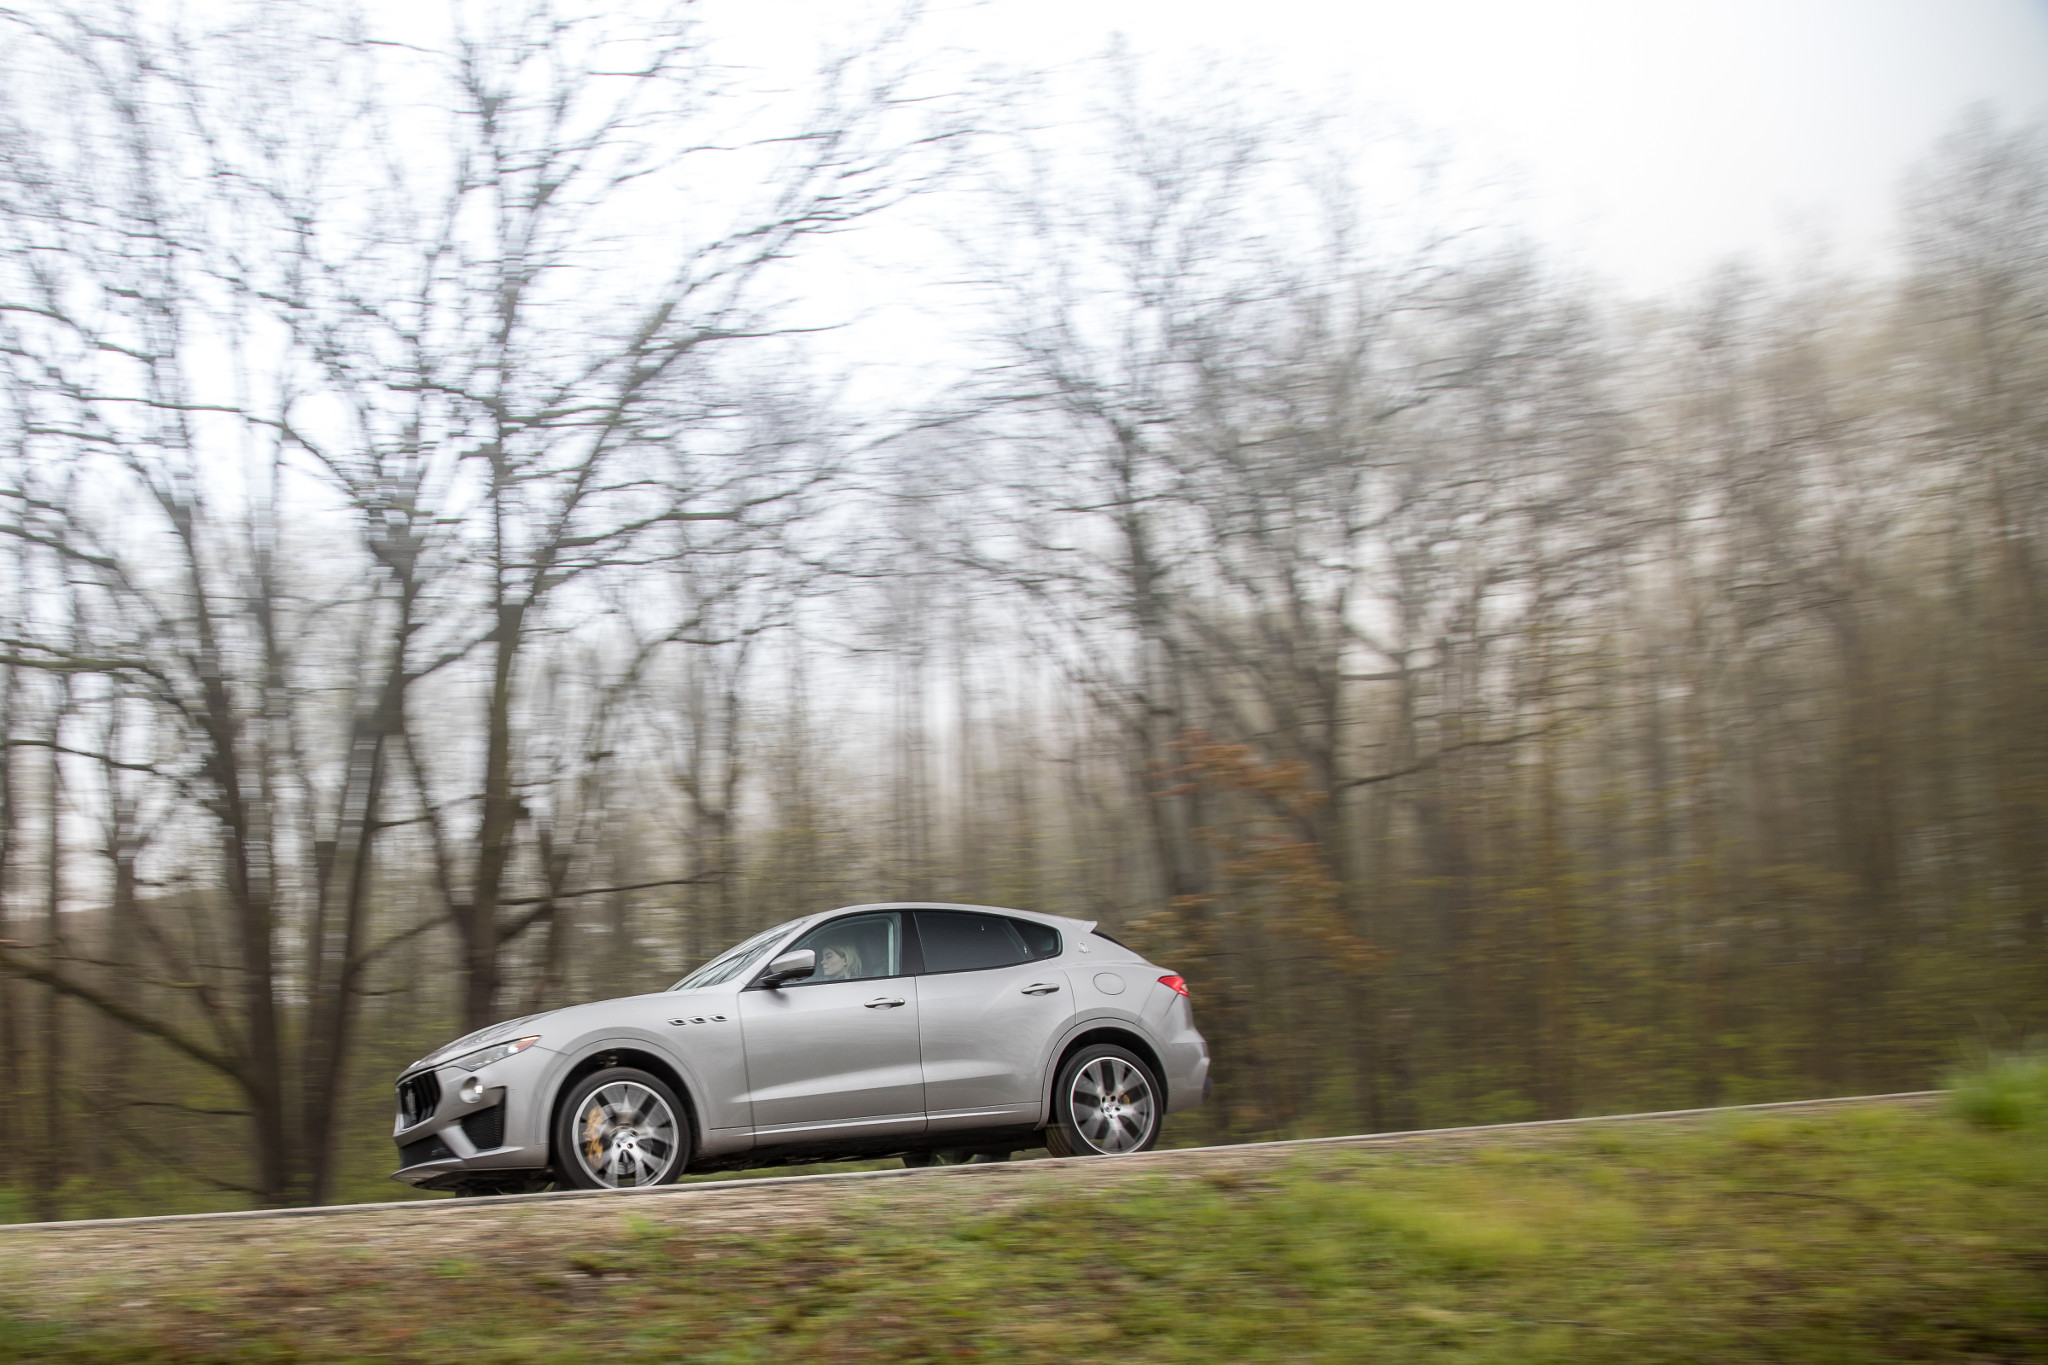 2019 Maserati Levante Review: Practically Good